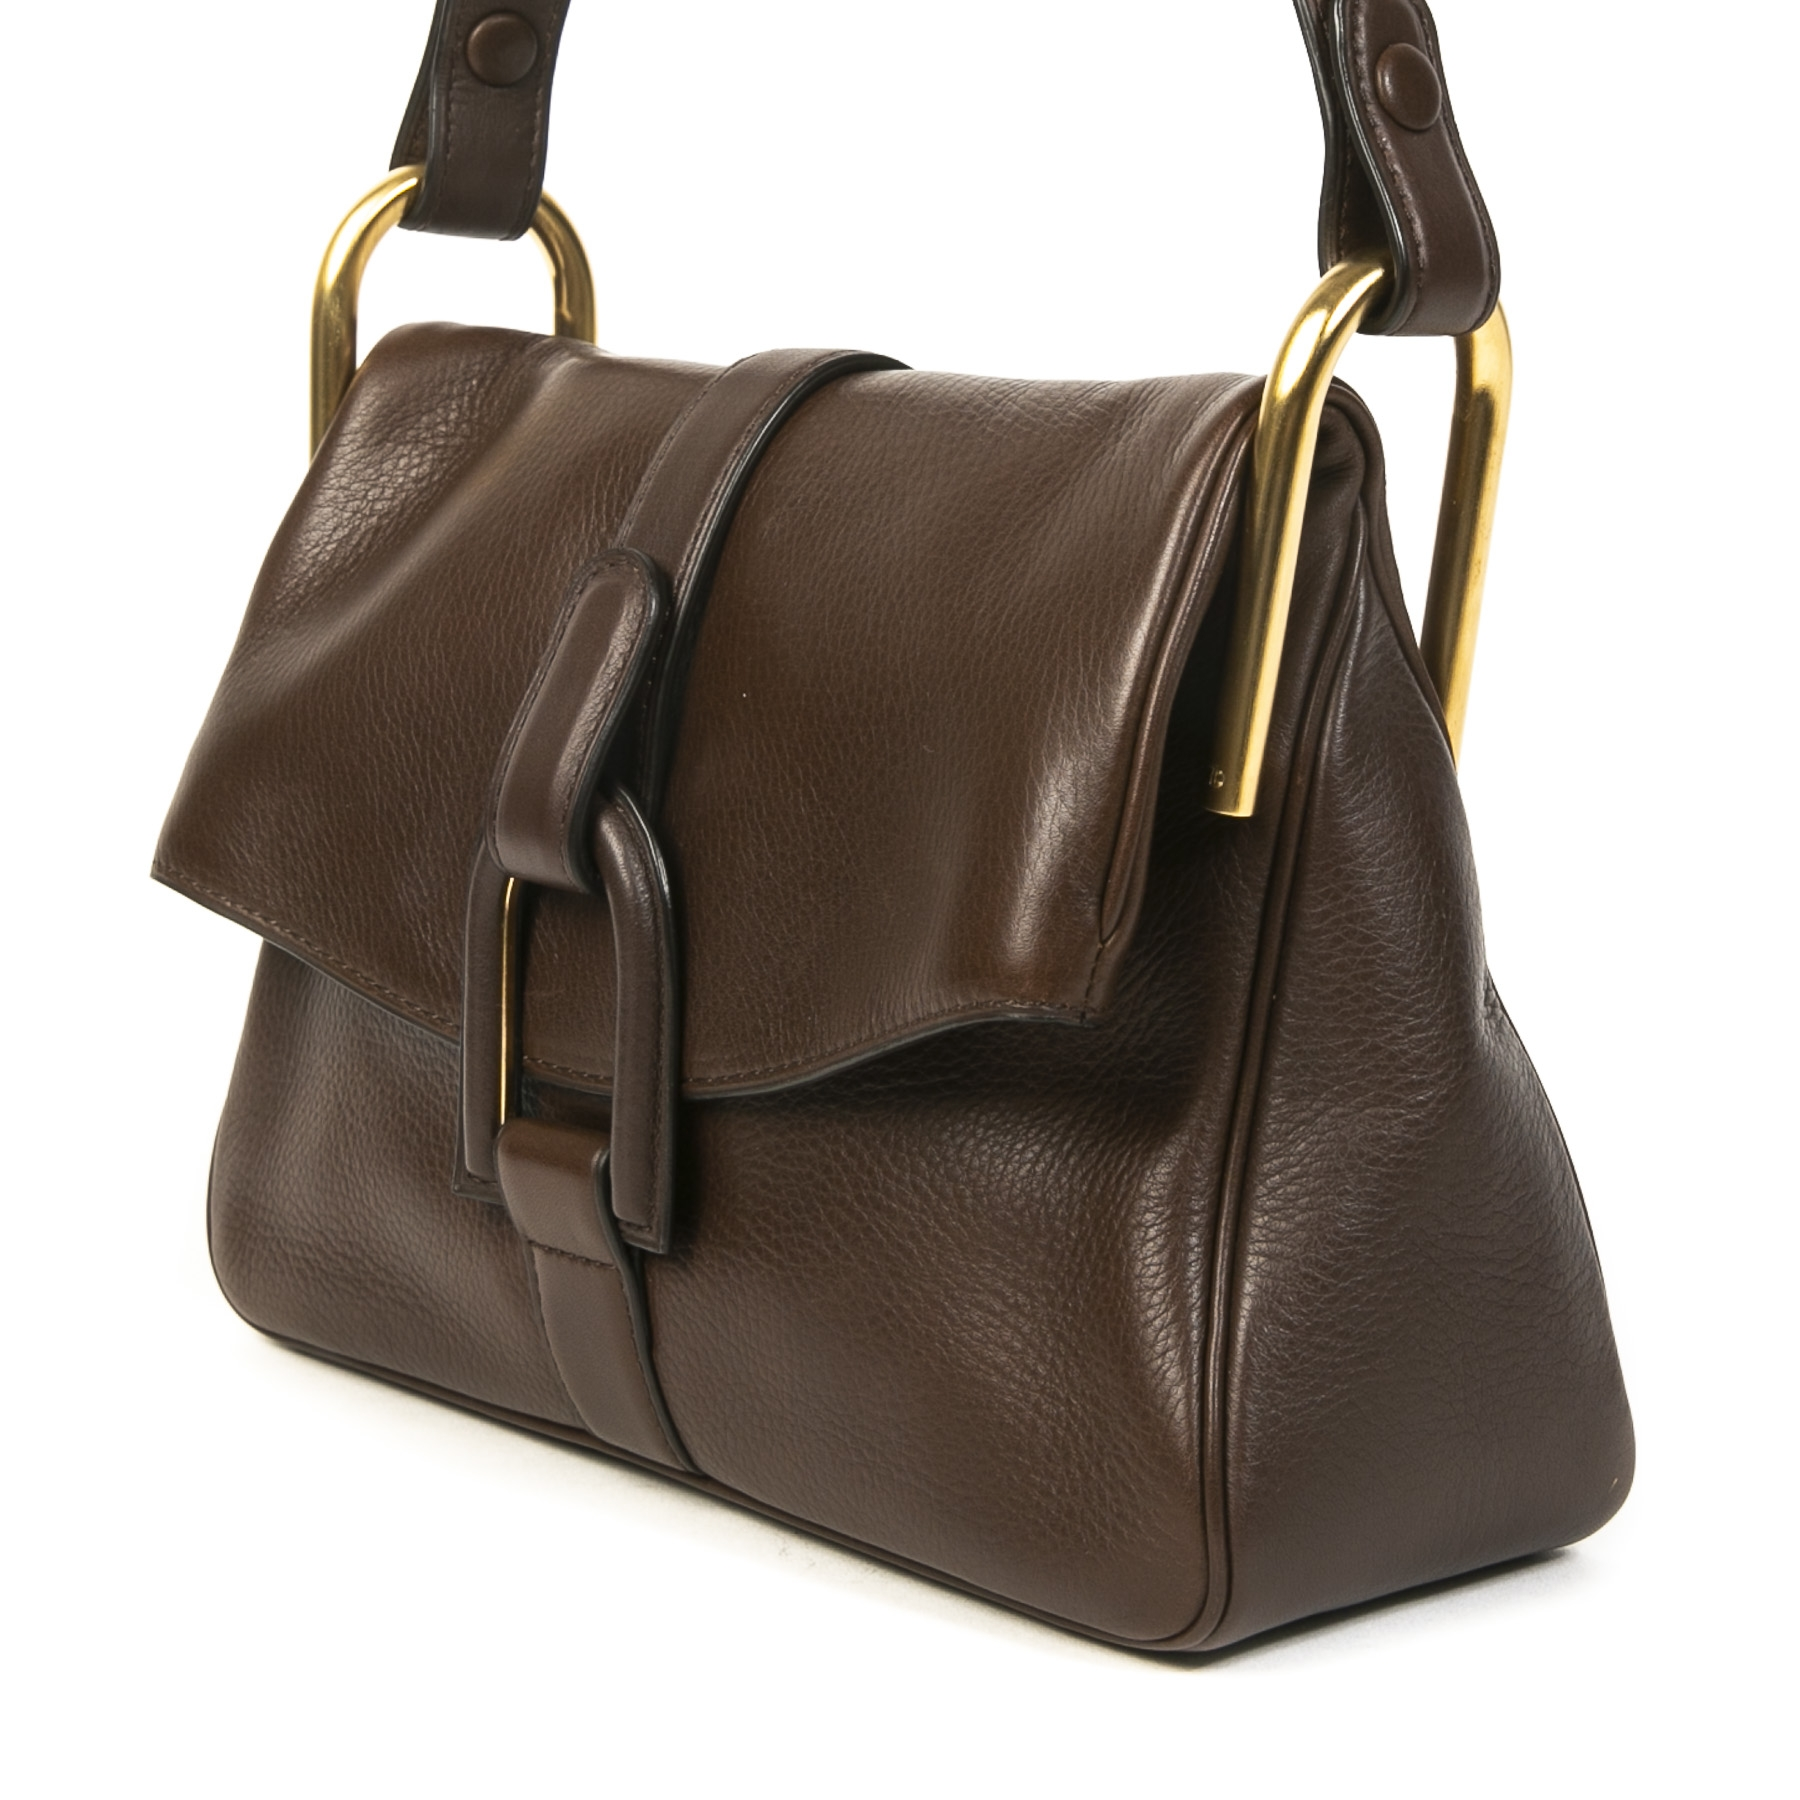 Delvaux Chestnut Brown Polo Givry Shoulder Bag for sale online at Labellov secondhand luxury